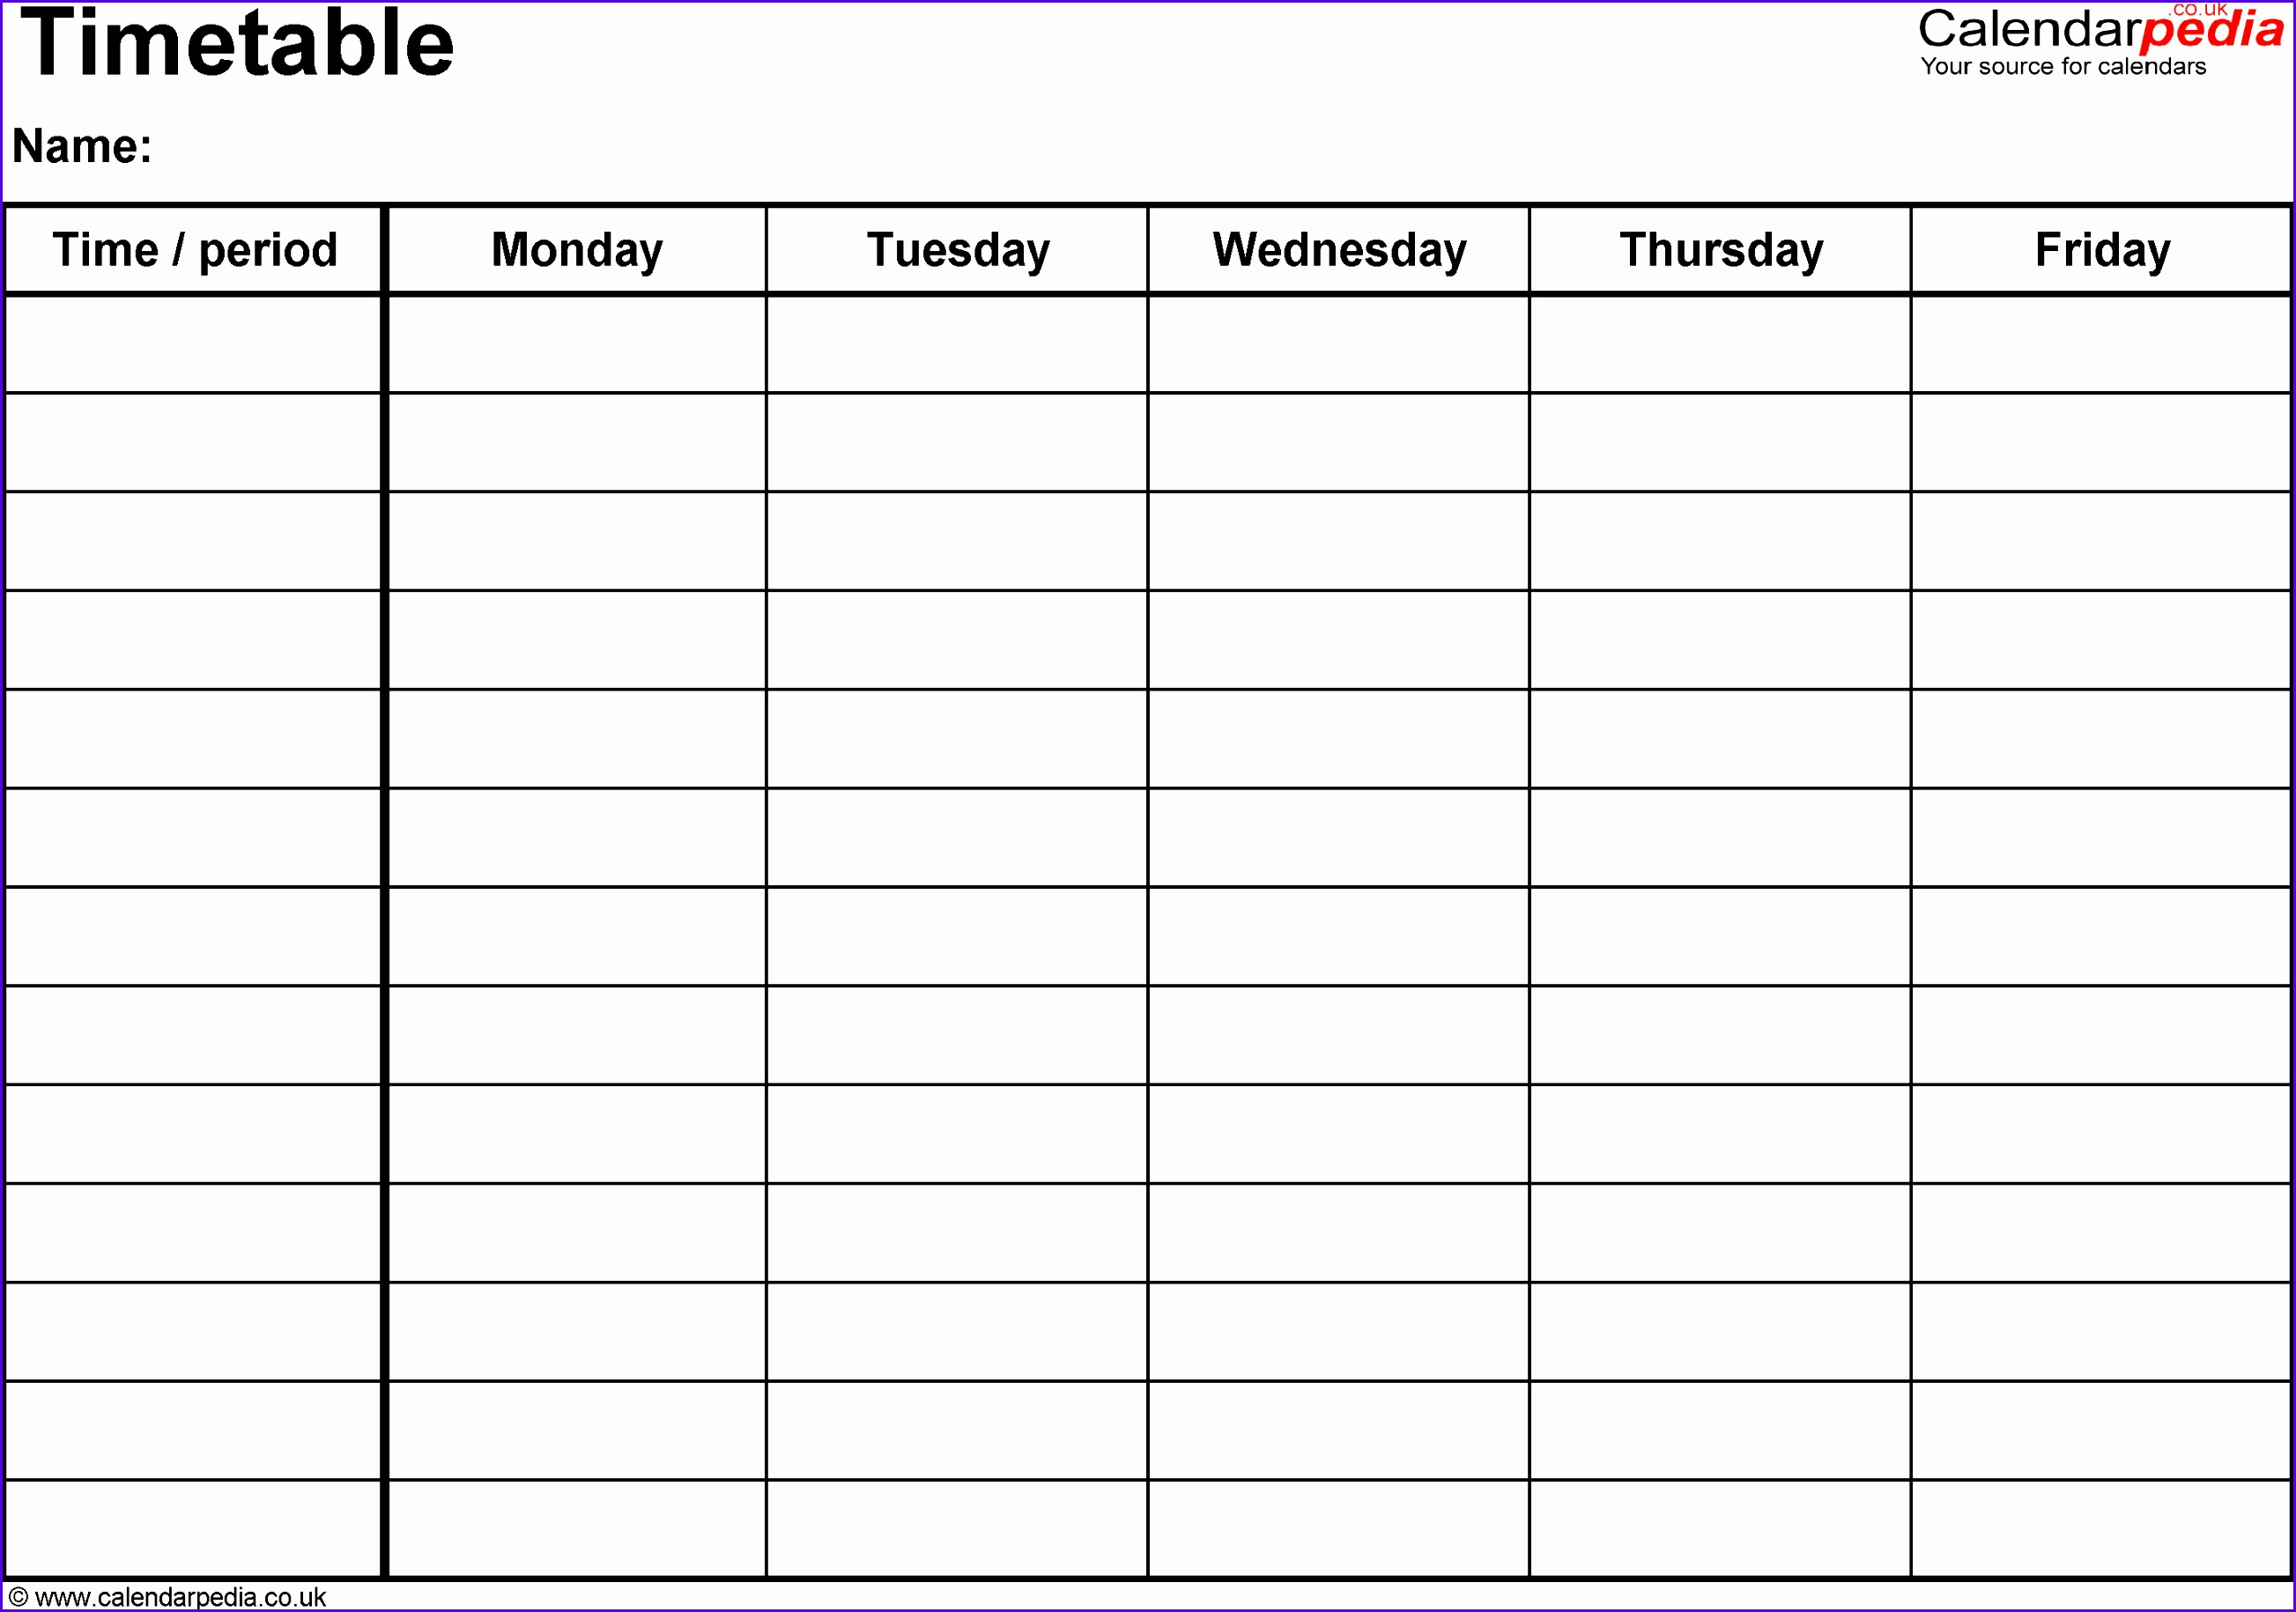 Example Excel Blank Calendar Template Jfdvw New Timetables as Free Printable Templates for Microsoft Excel 28641990